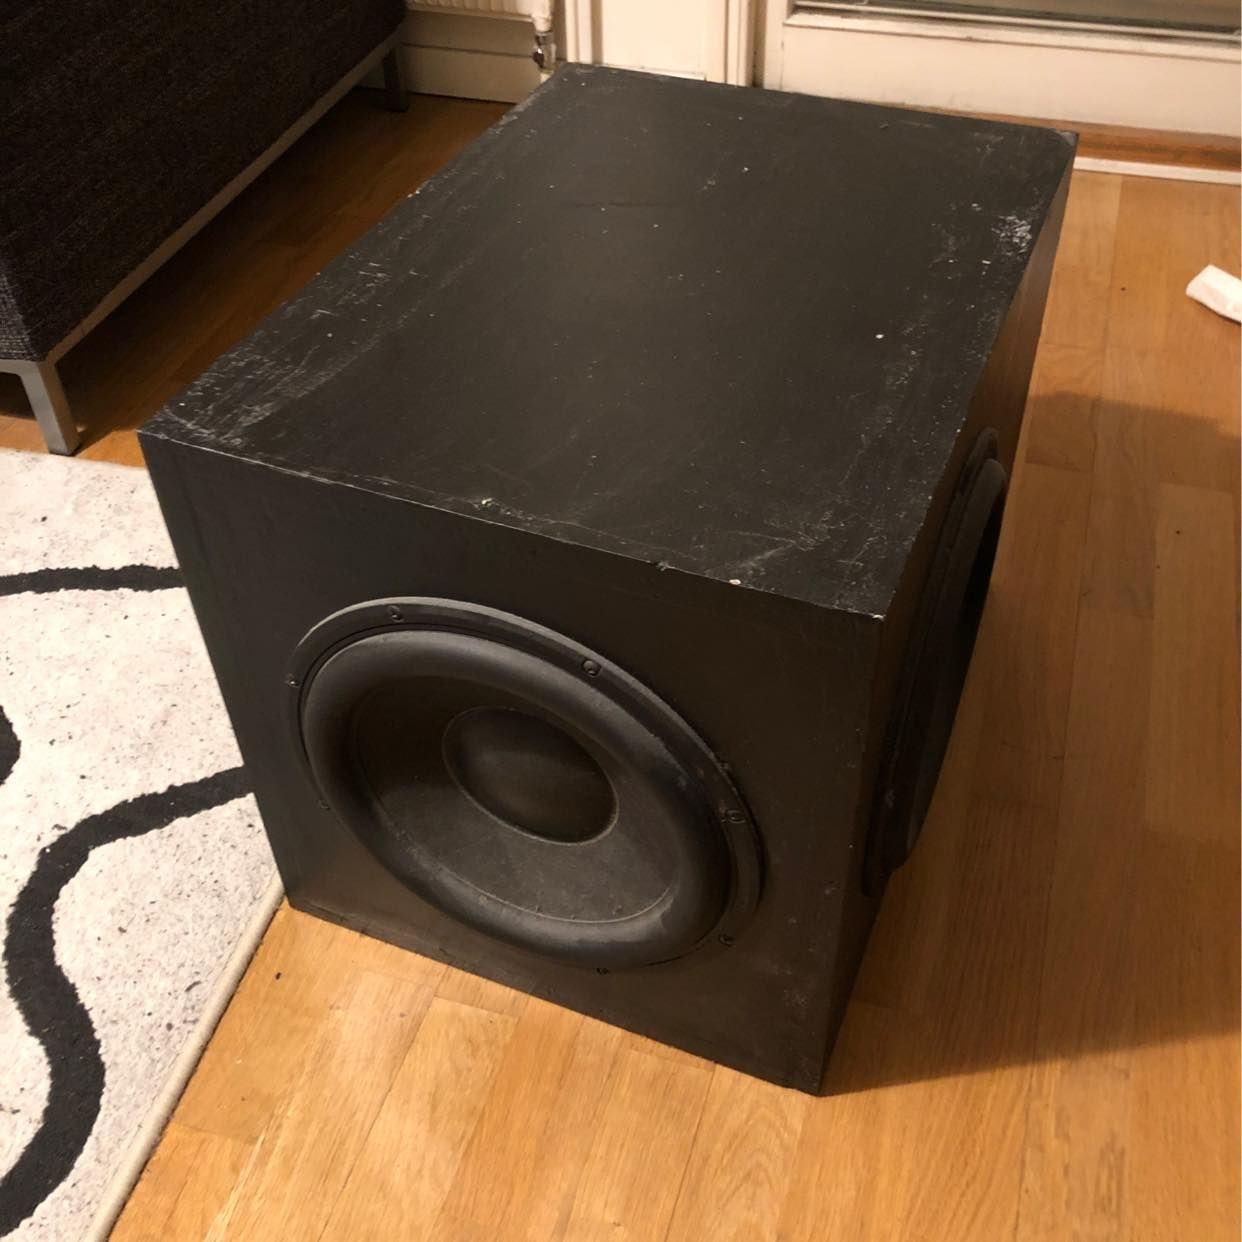 image of Subwoofer - Stockholm City